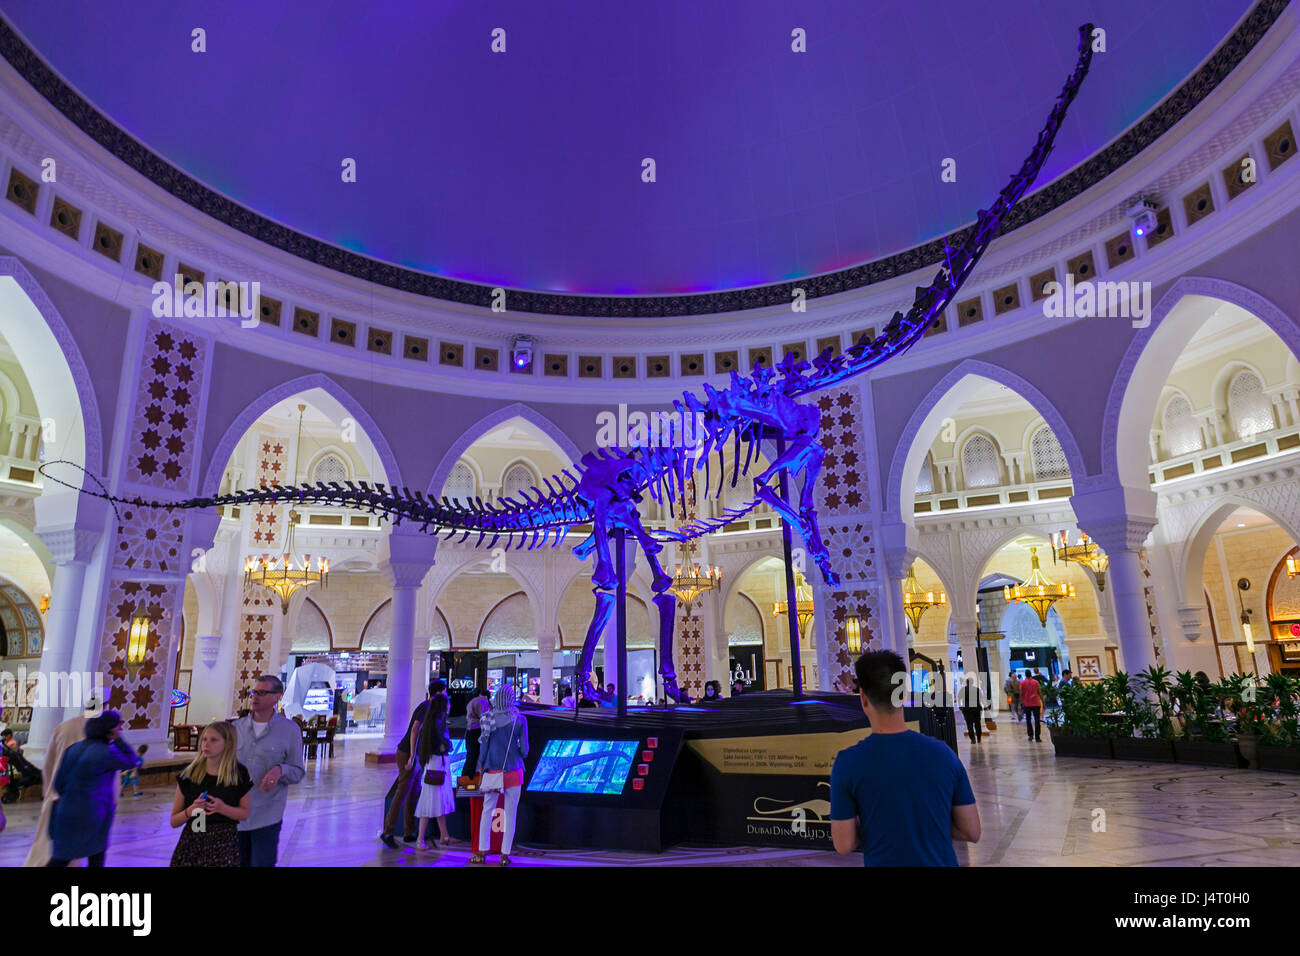 DUBAI MALL,DUBAI, UAE-15TH AUG 2015:-The Dubai mall is more than just shopping it is an experience. Stock Photo